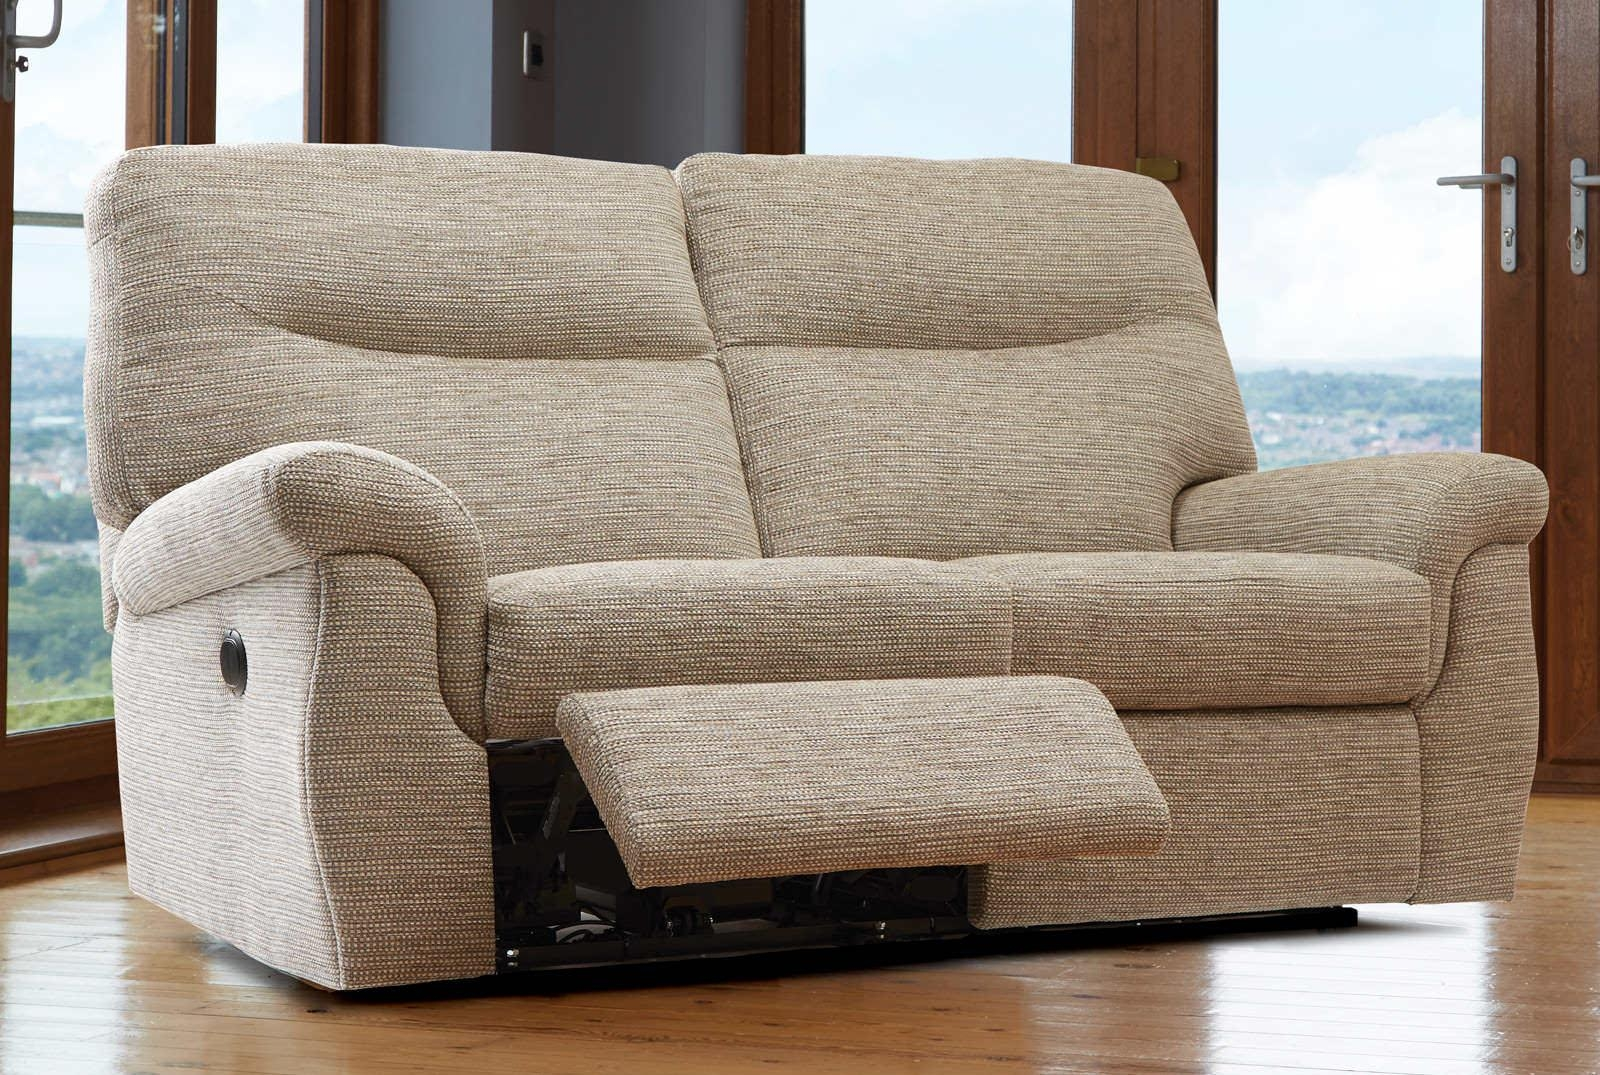 Recliner 2 Seater Sofa – Leather Sectional Sofa Inside 2 Seat Recliner Sofas (Image 8 of 20)